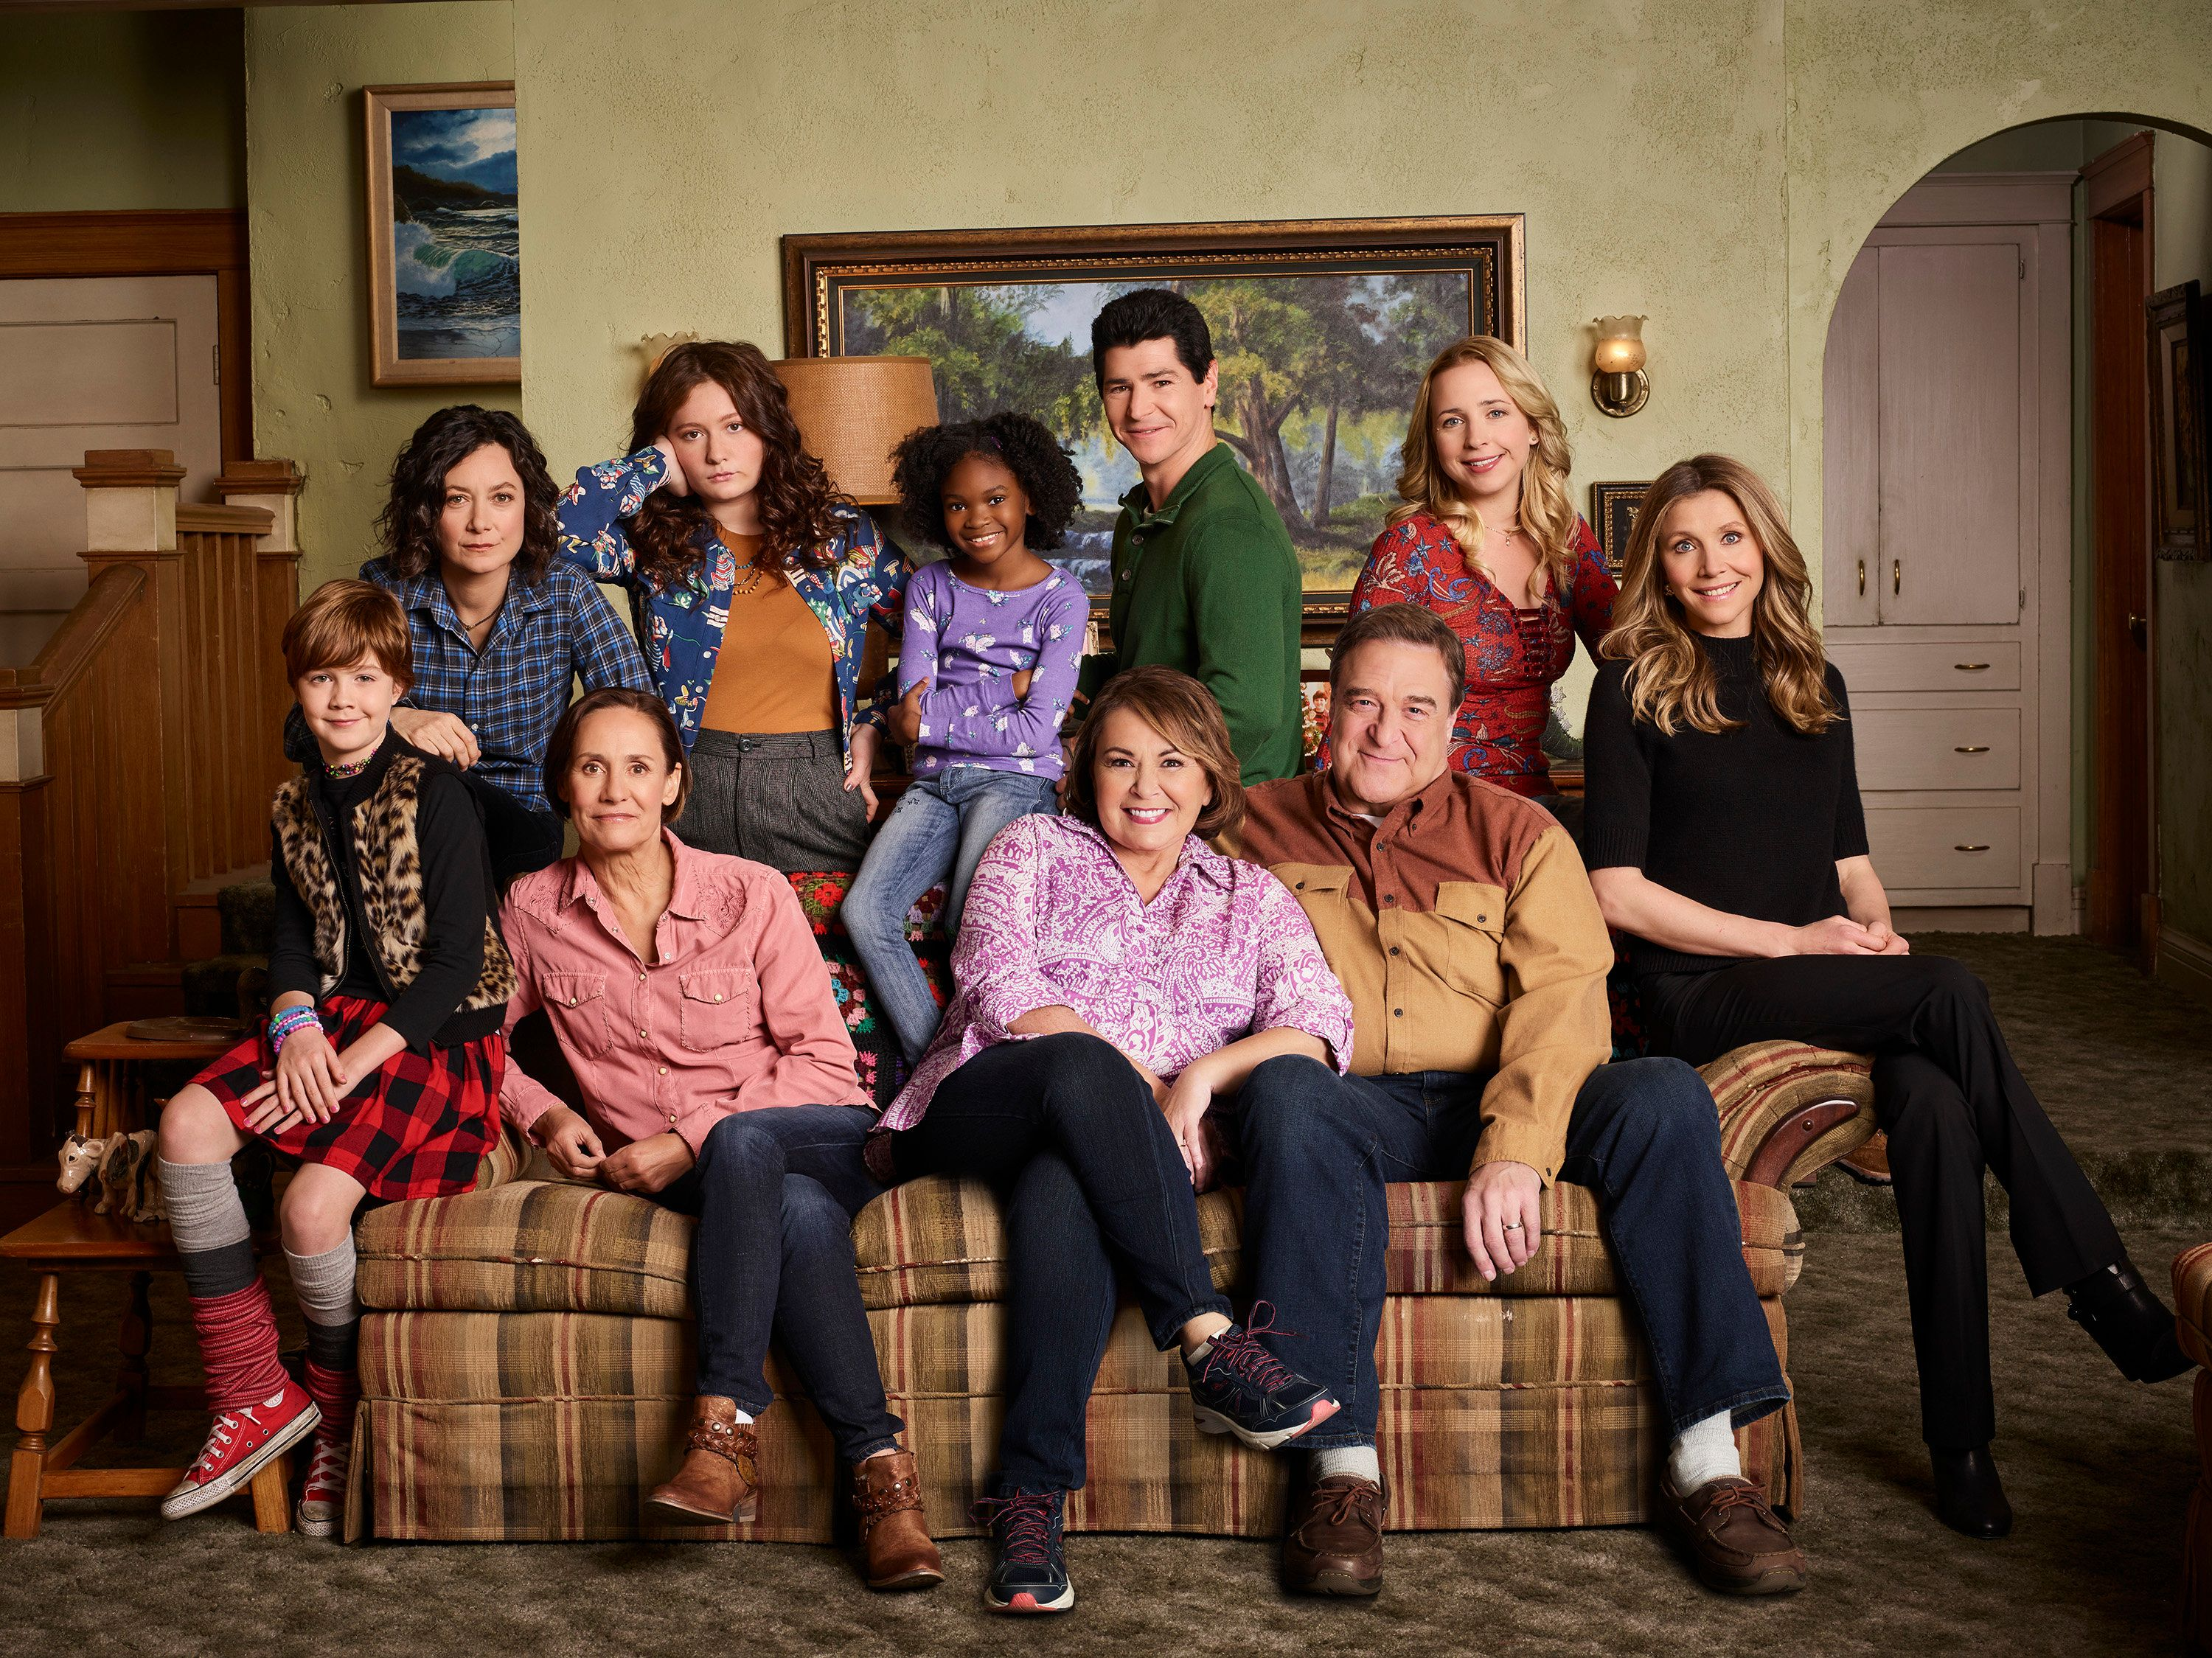 ABC Cancels 'Roseanne' Following Backlash Over Star's Racist Tweets